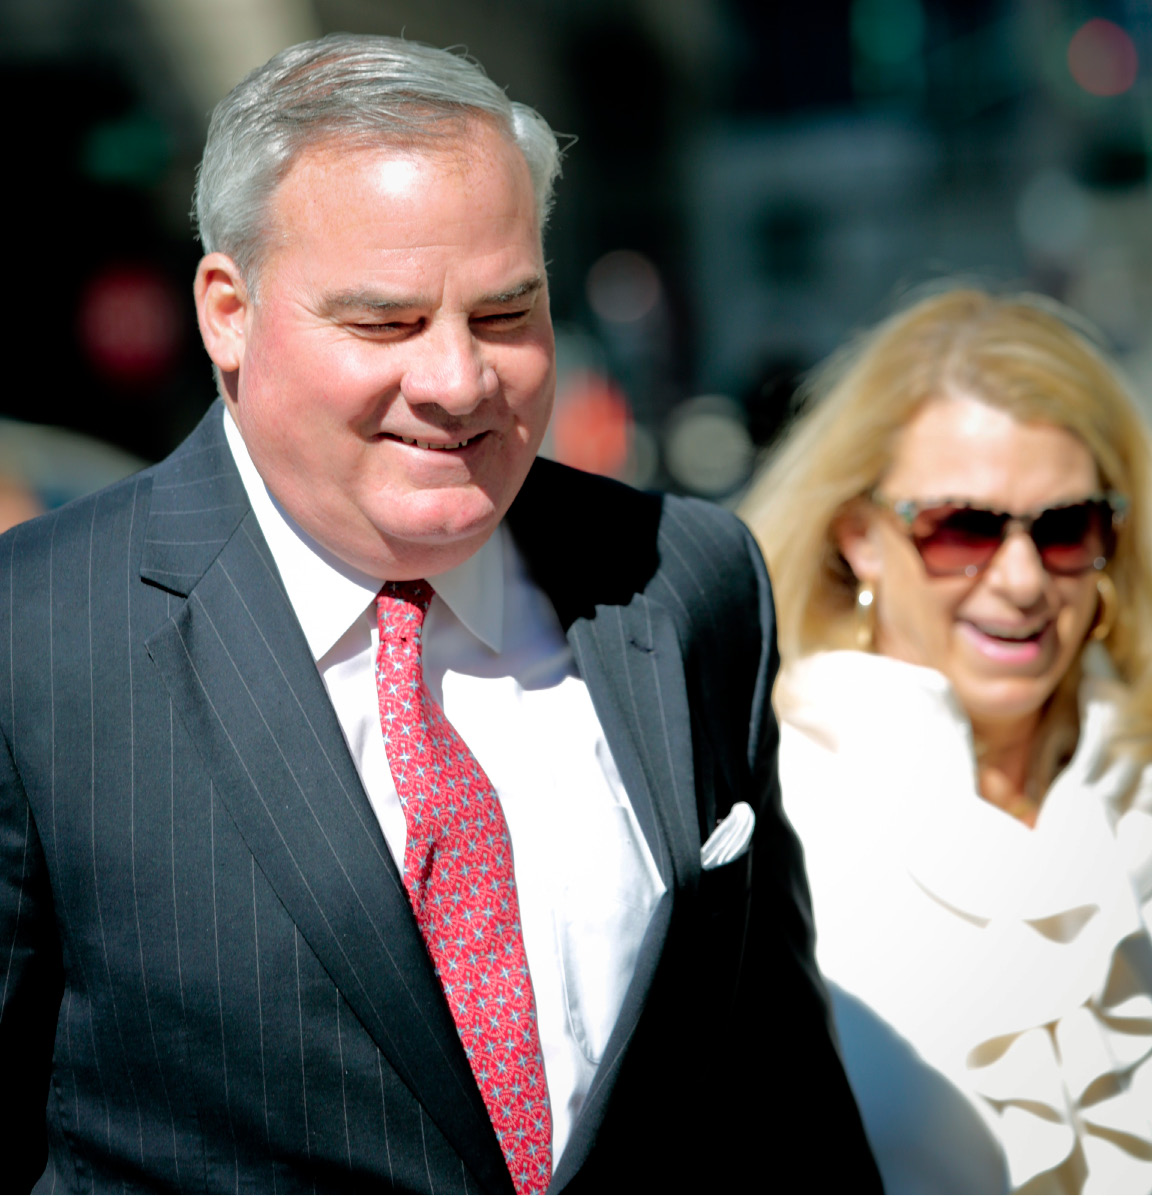 Former Connecticut Gov. John Rowland, left, leaves with his wife Patricia, right, after he appeared in federal appeals court to ask the court to overturn his political corruption conviction, Friday, March 18, 2016, in New York. (AP Photo/Bebeto Matthews)